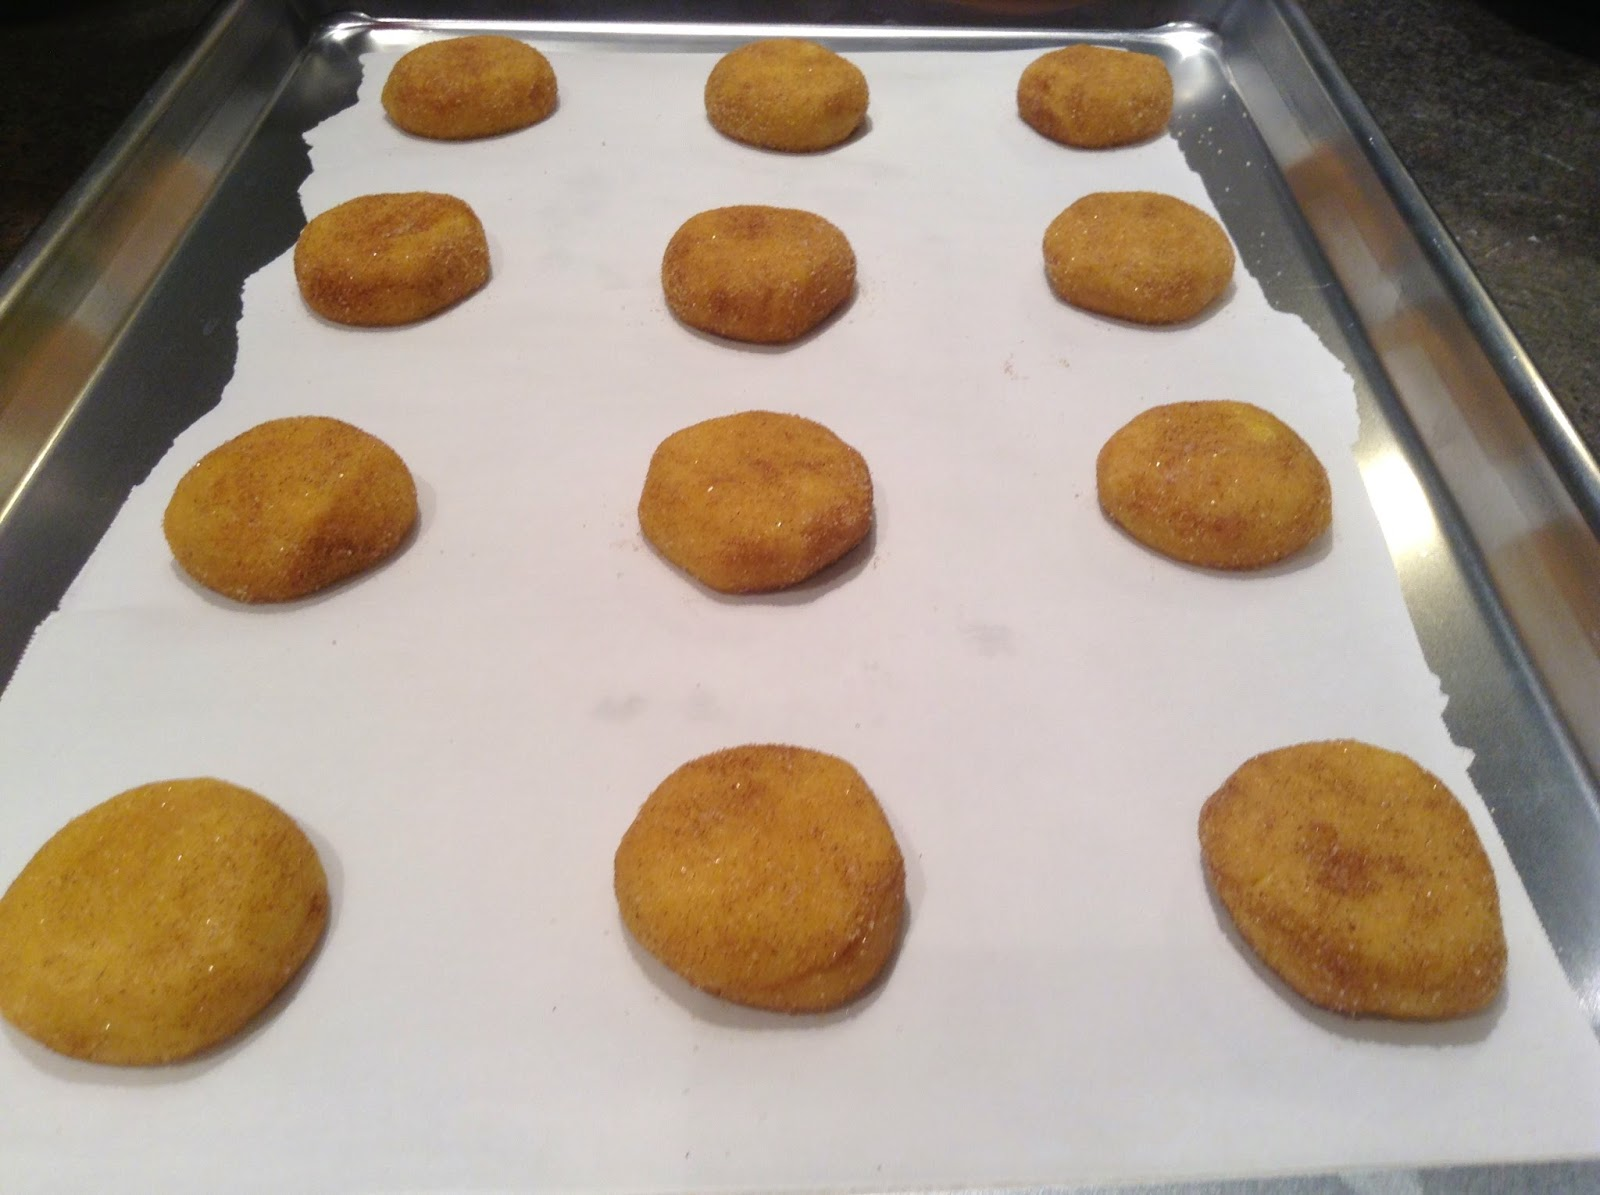 Lemon Cake Mix Snickerdoodles ready for the oven